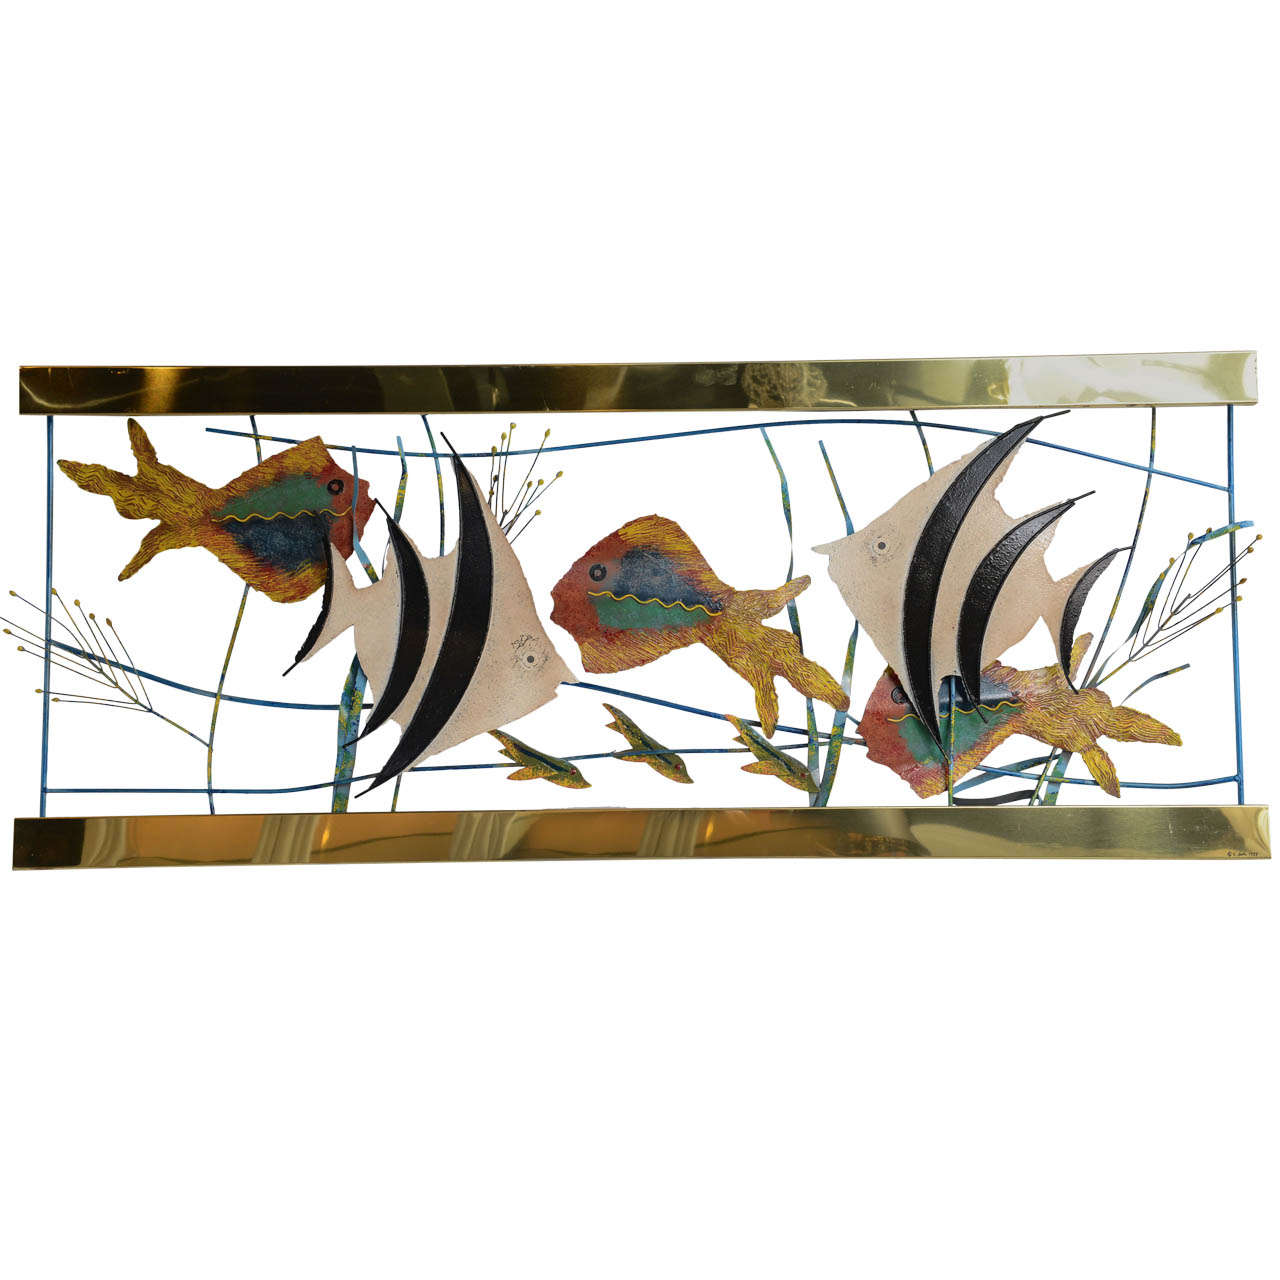 Home Aquarium Decorations Tropical Fish In Aquarium Metal Wall Sculpture Signed C